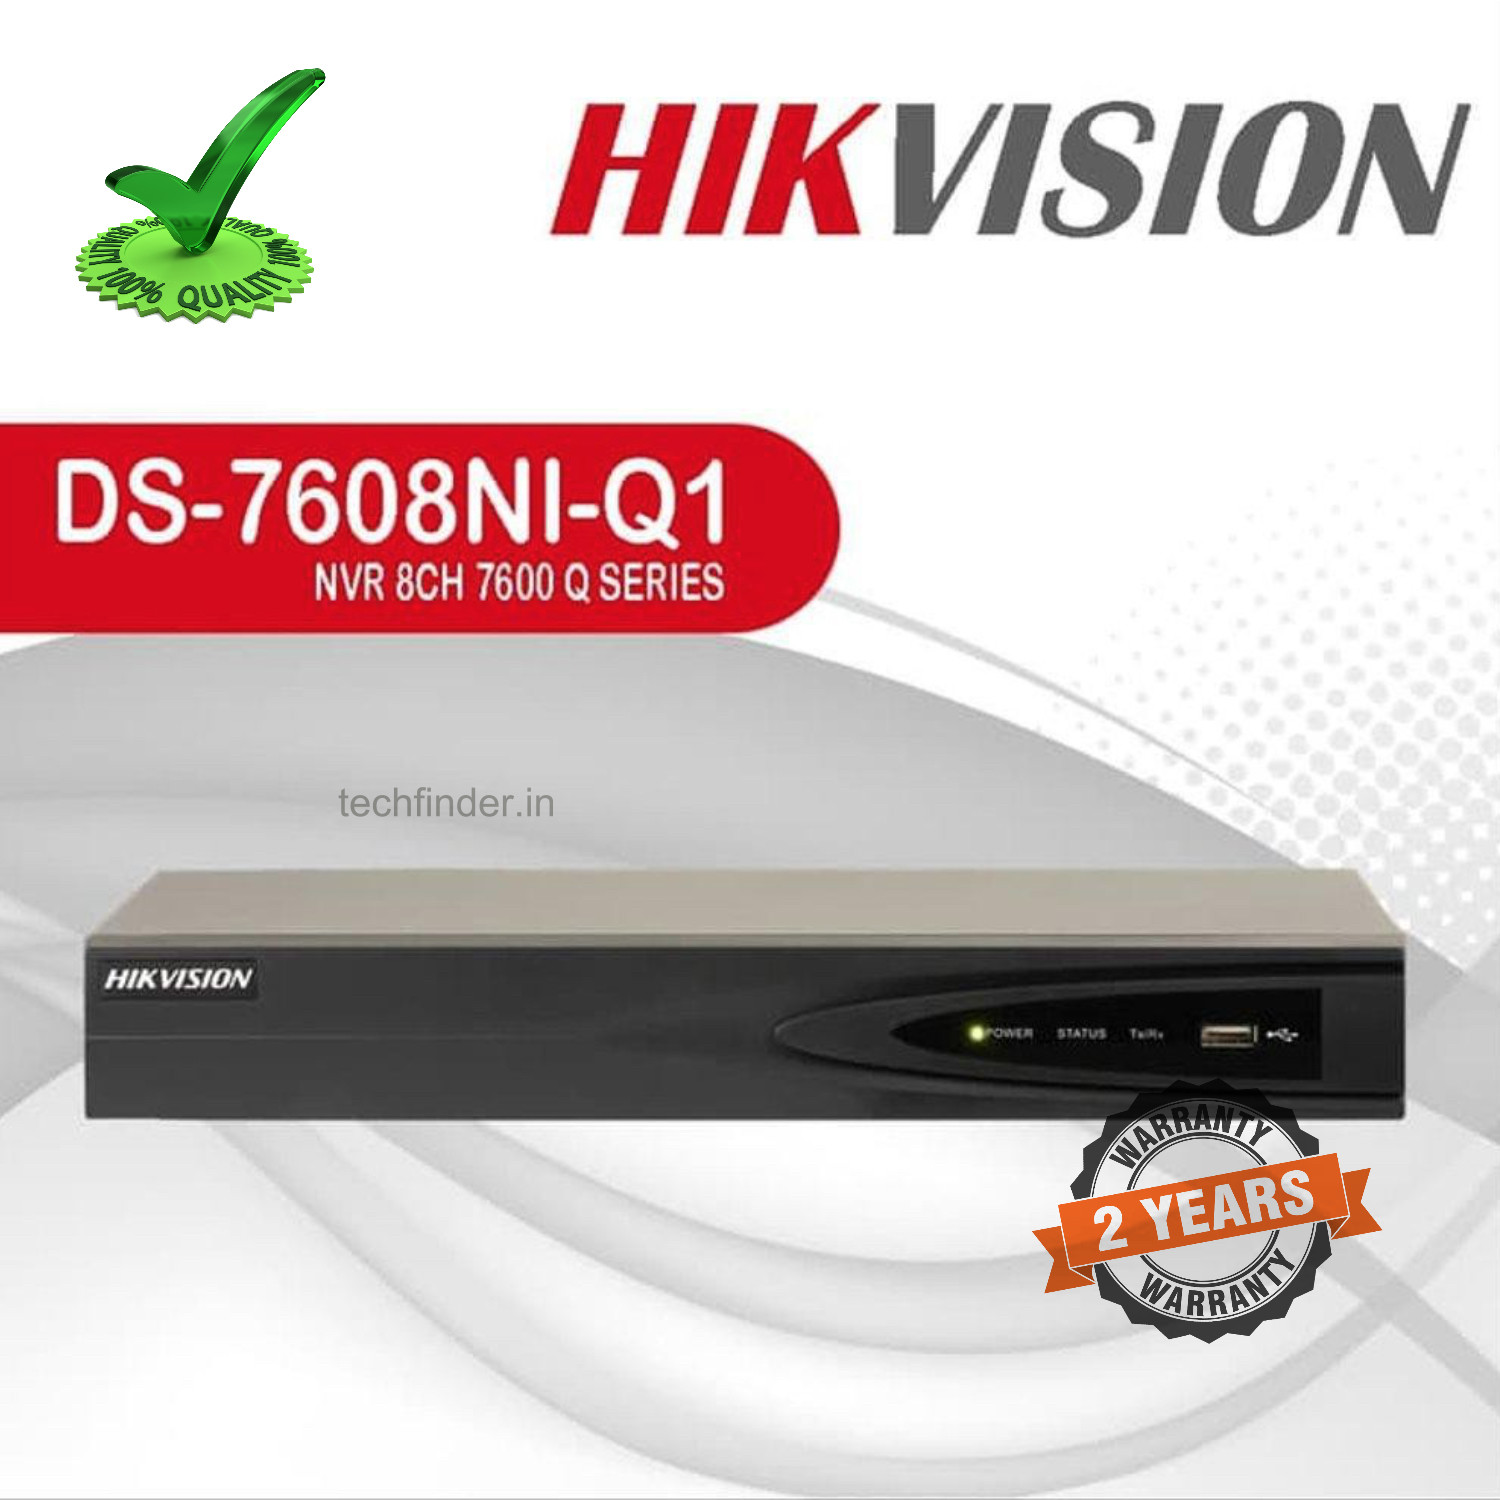 Hikvision DS-7608NI-Q1 Series 8ch support 4k Nvr